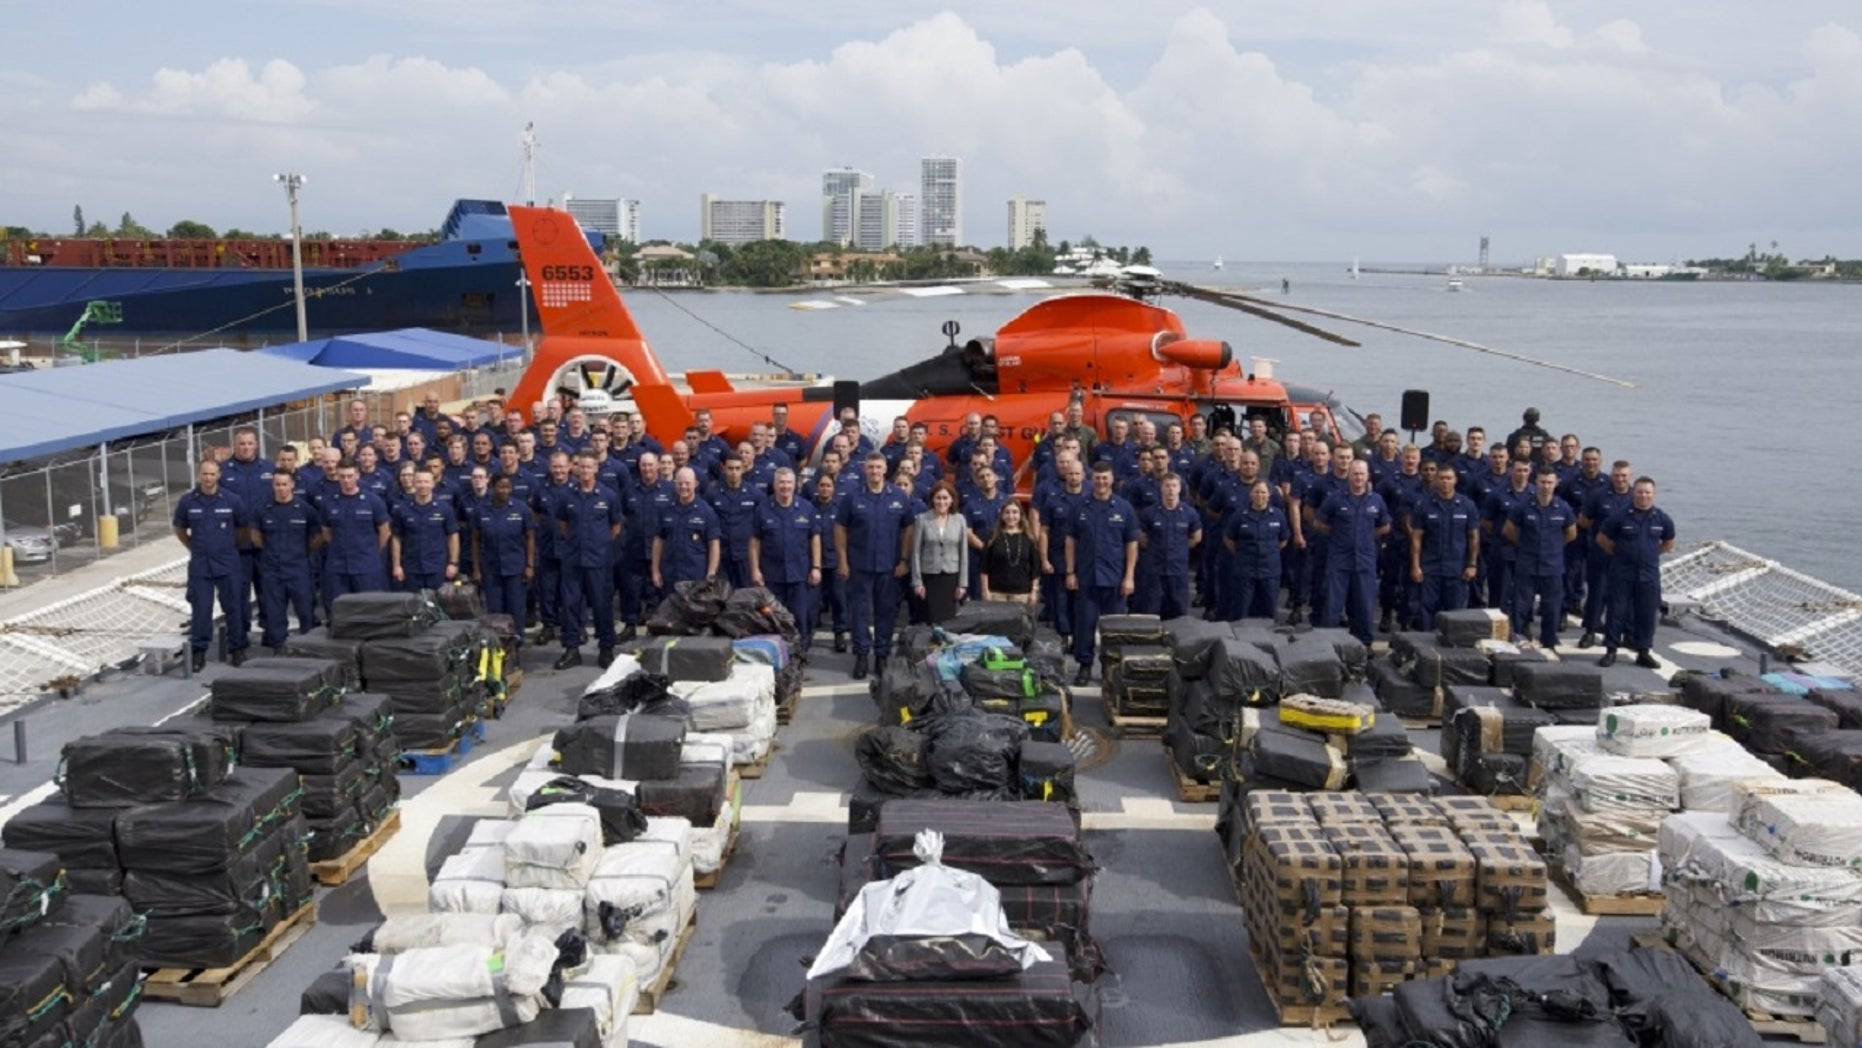 The Coast Guard seized 18.5 tons of cocaine in international waters.